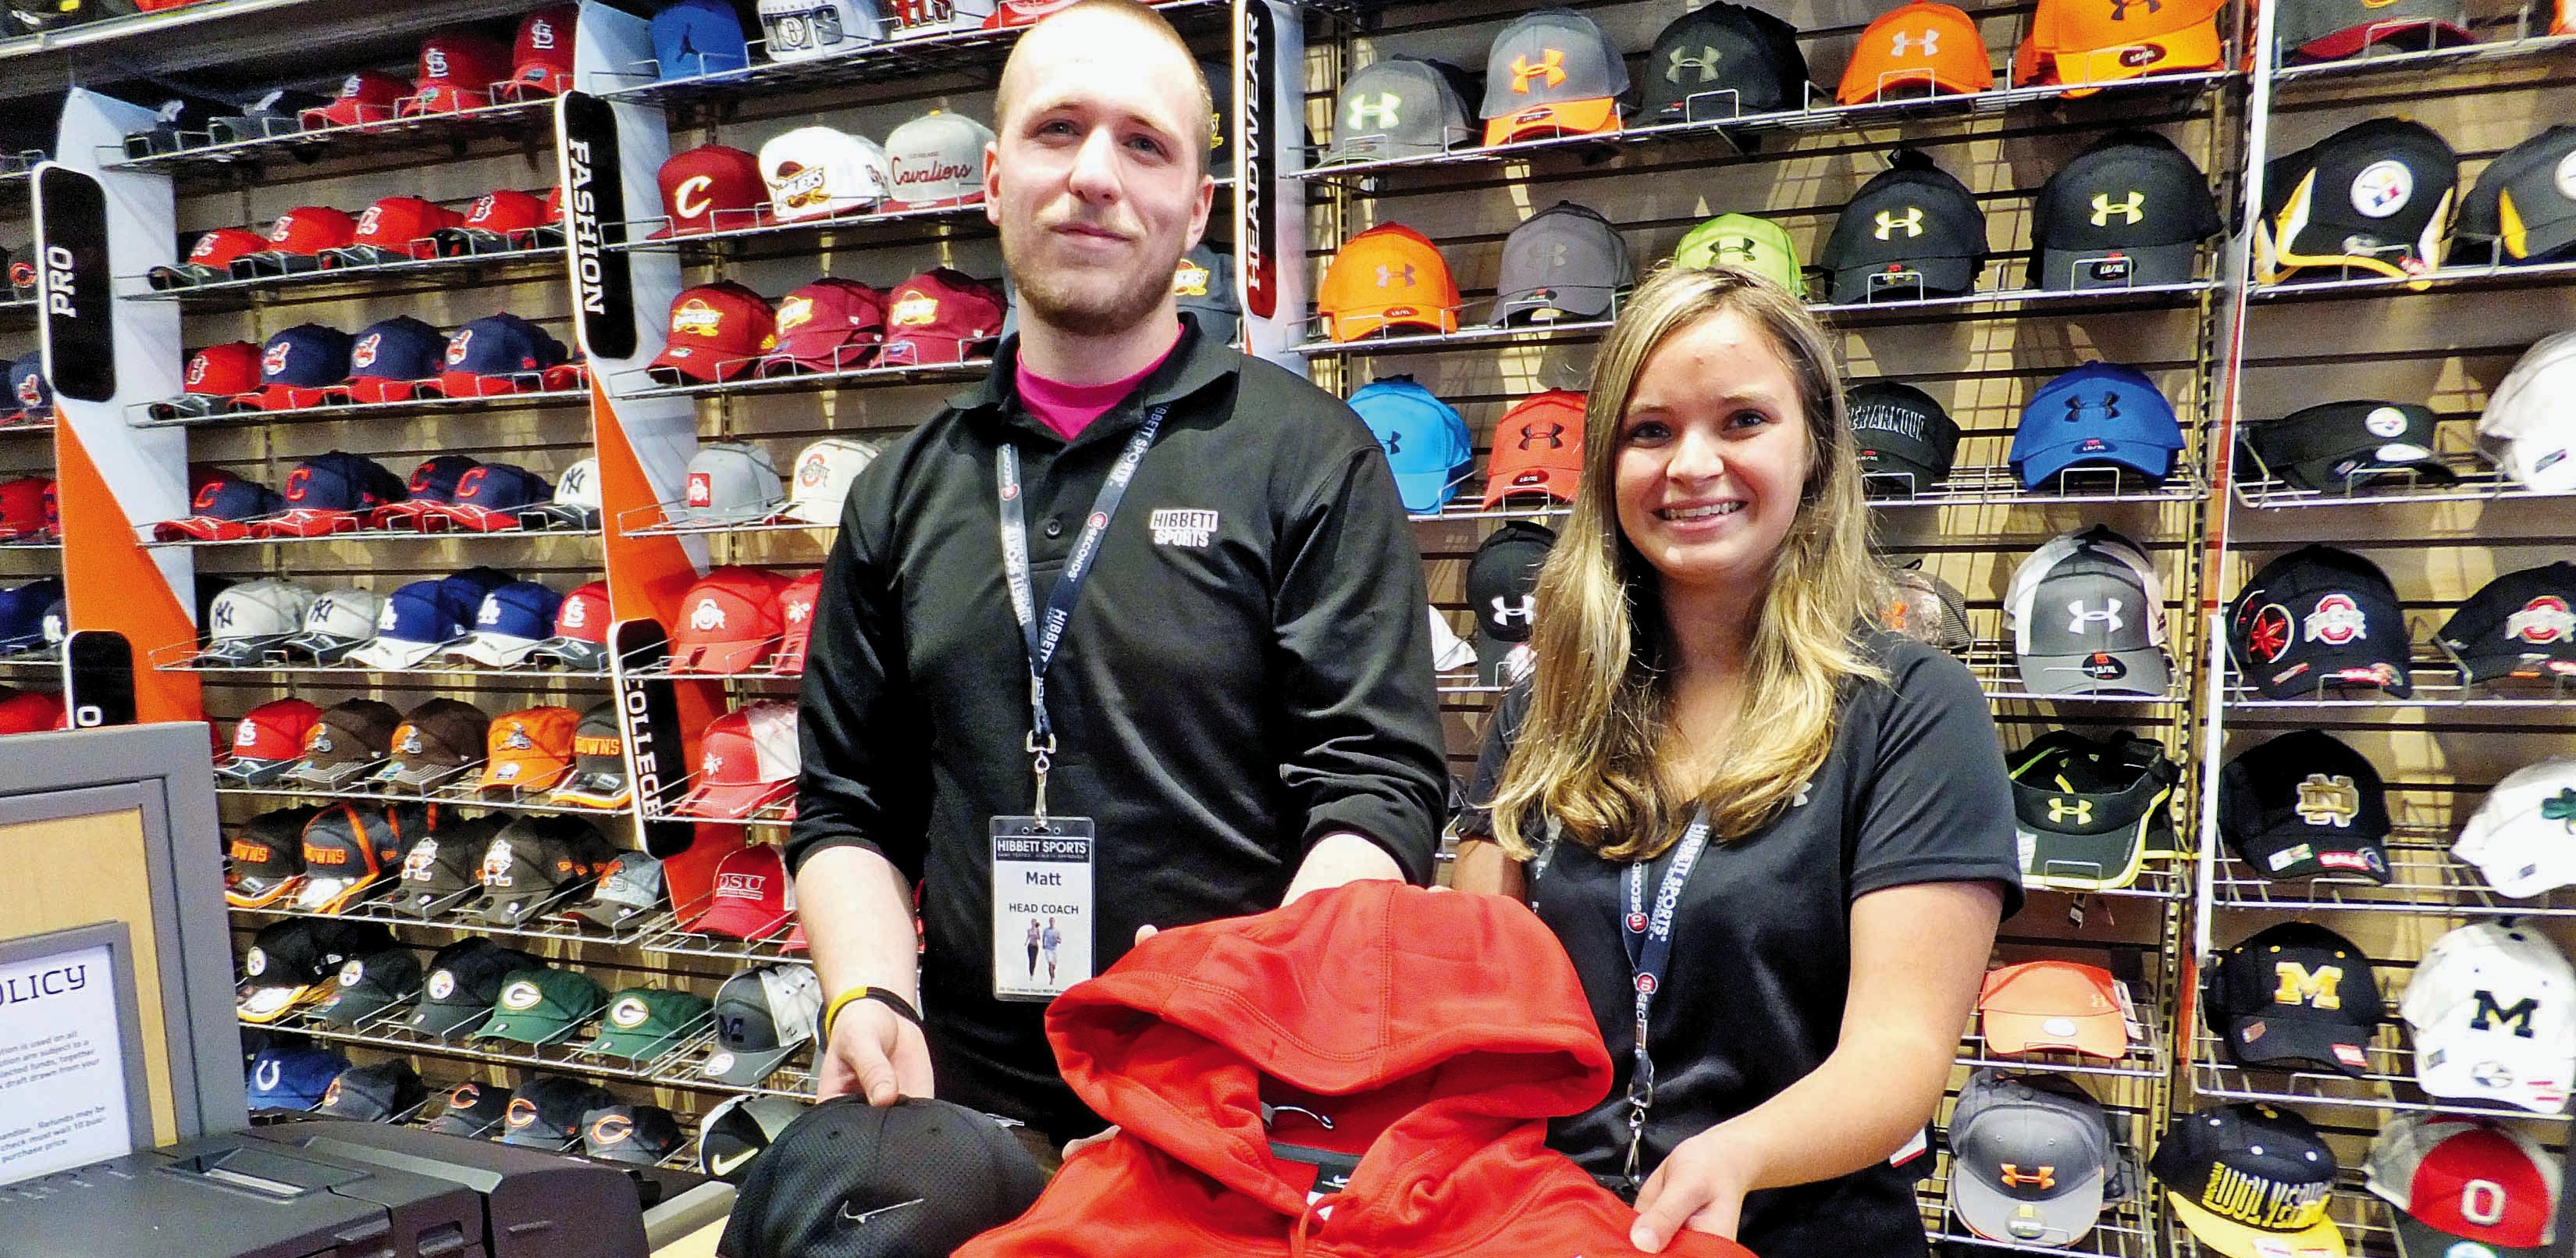 Chardon Store Caters to Fans of Fitness and Sports